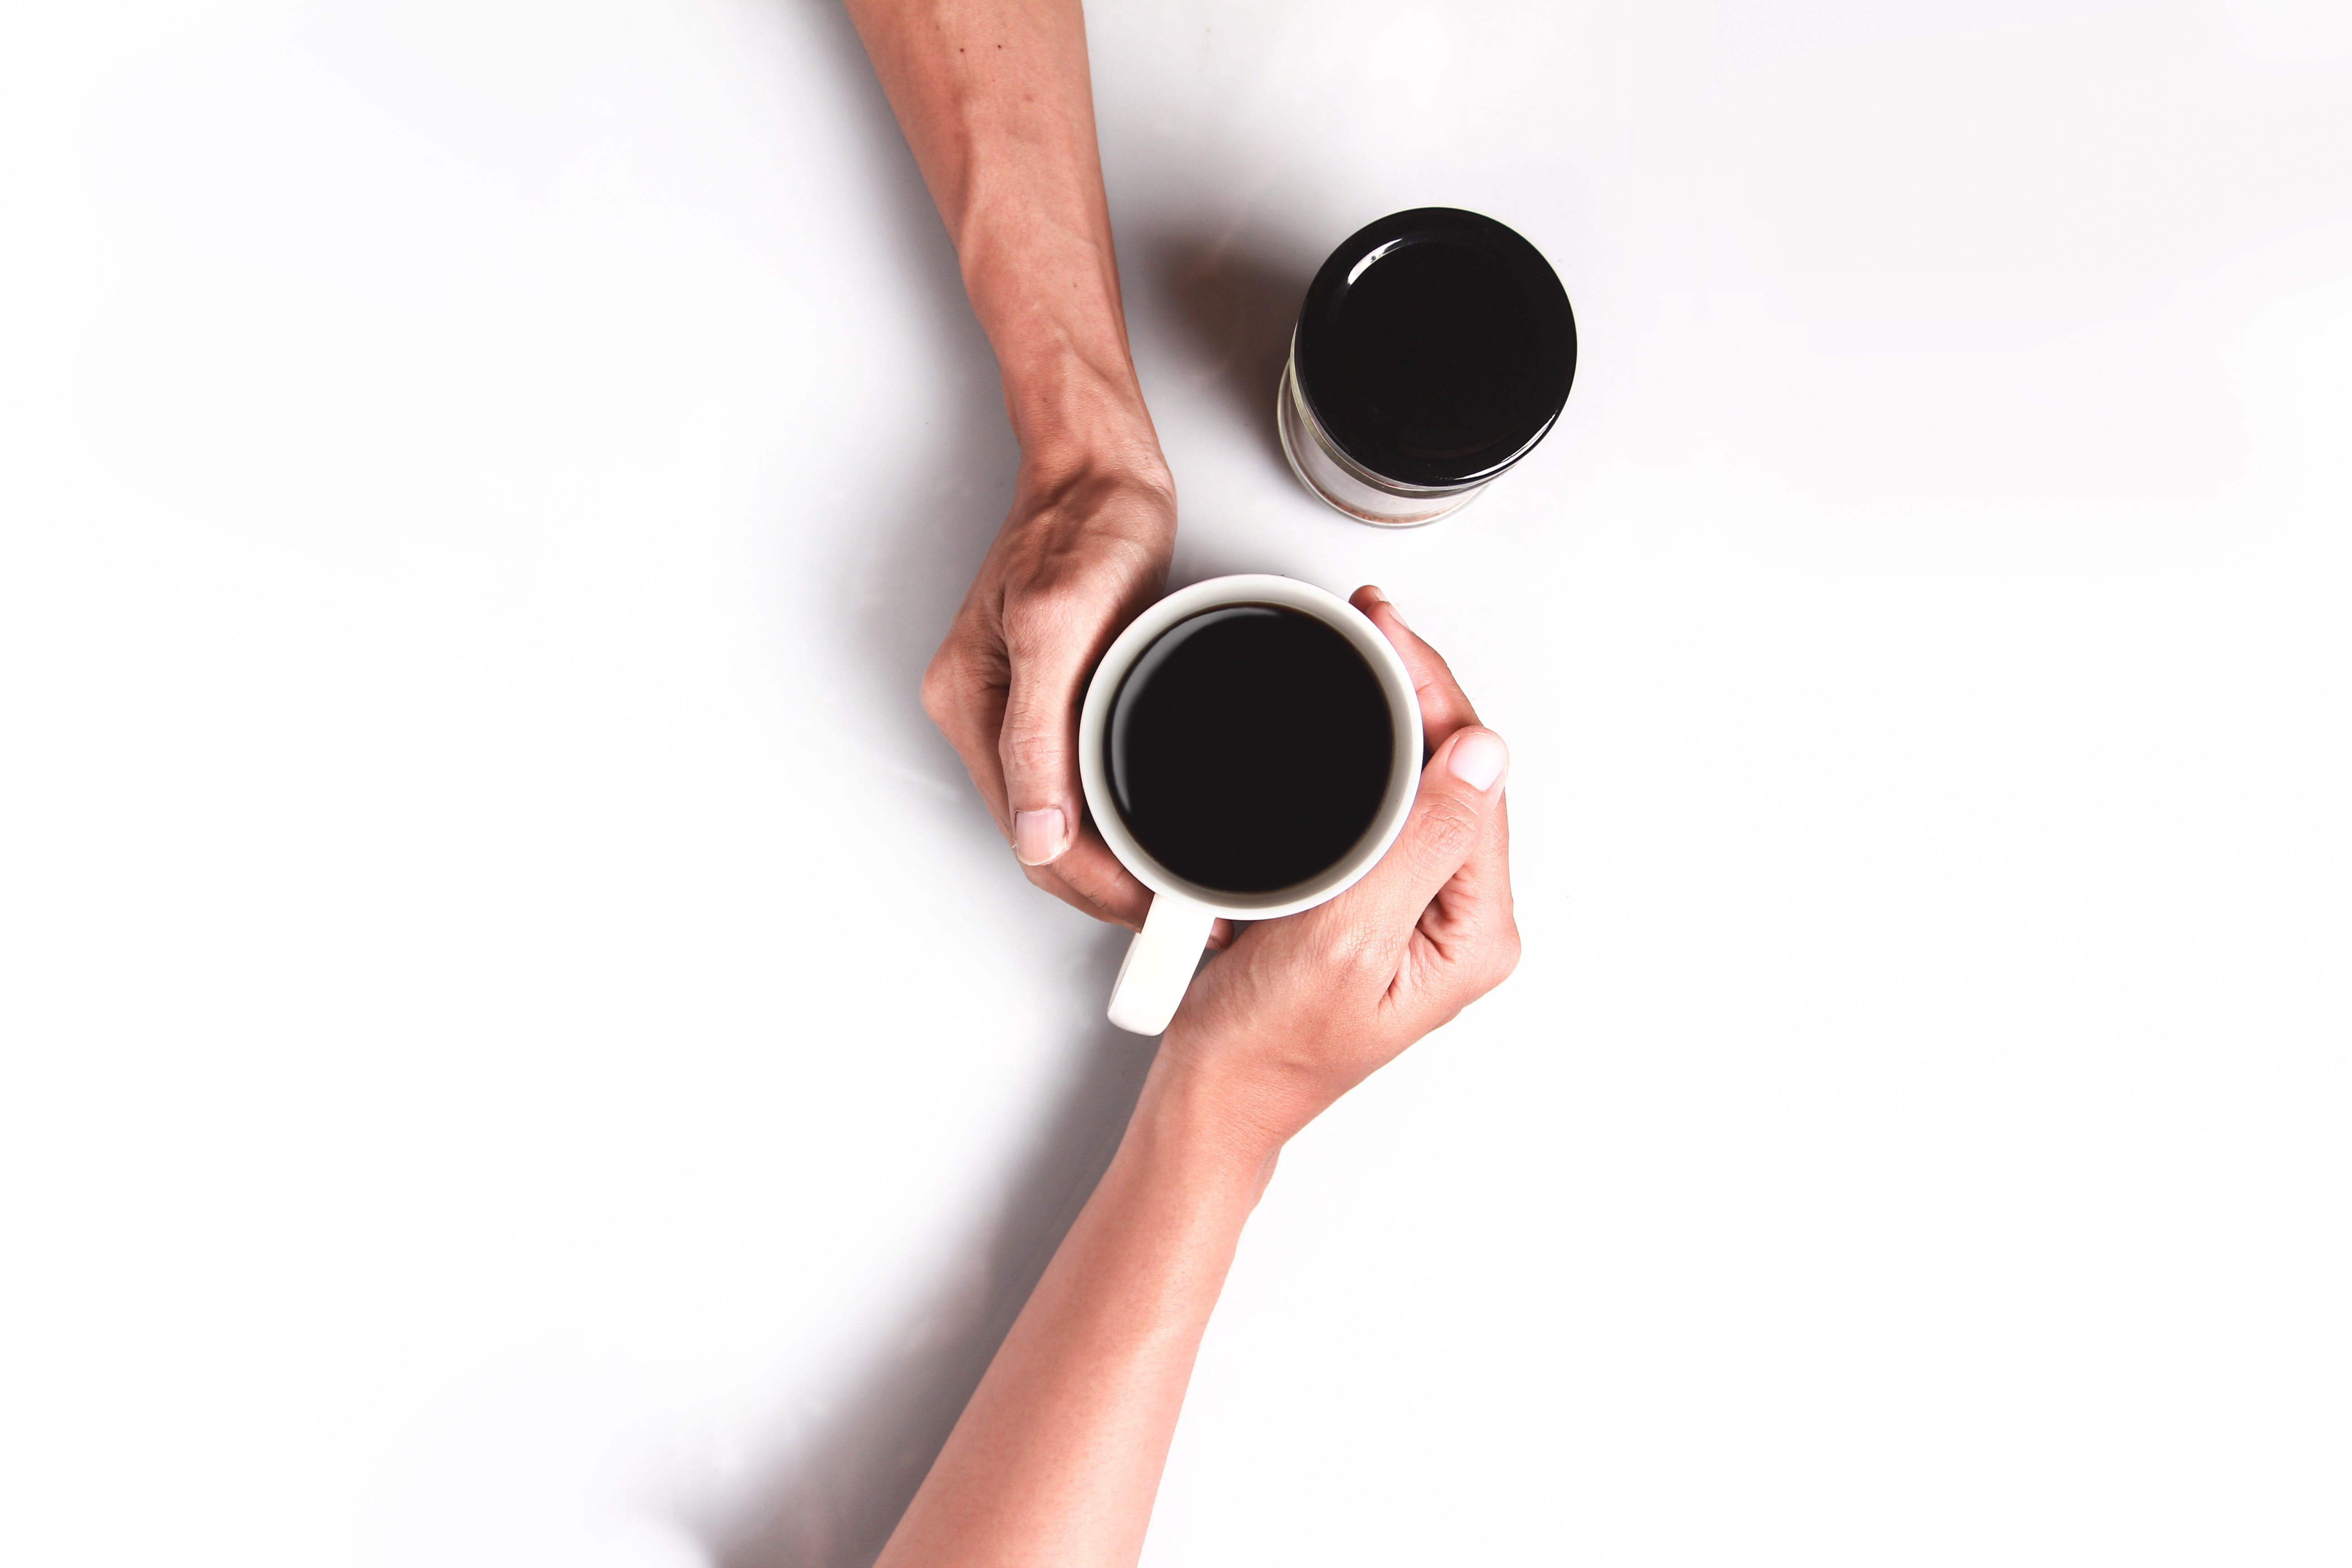 Two Person's Hand Holding White Mug Filled With Coffee